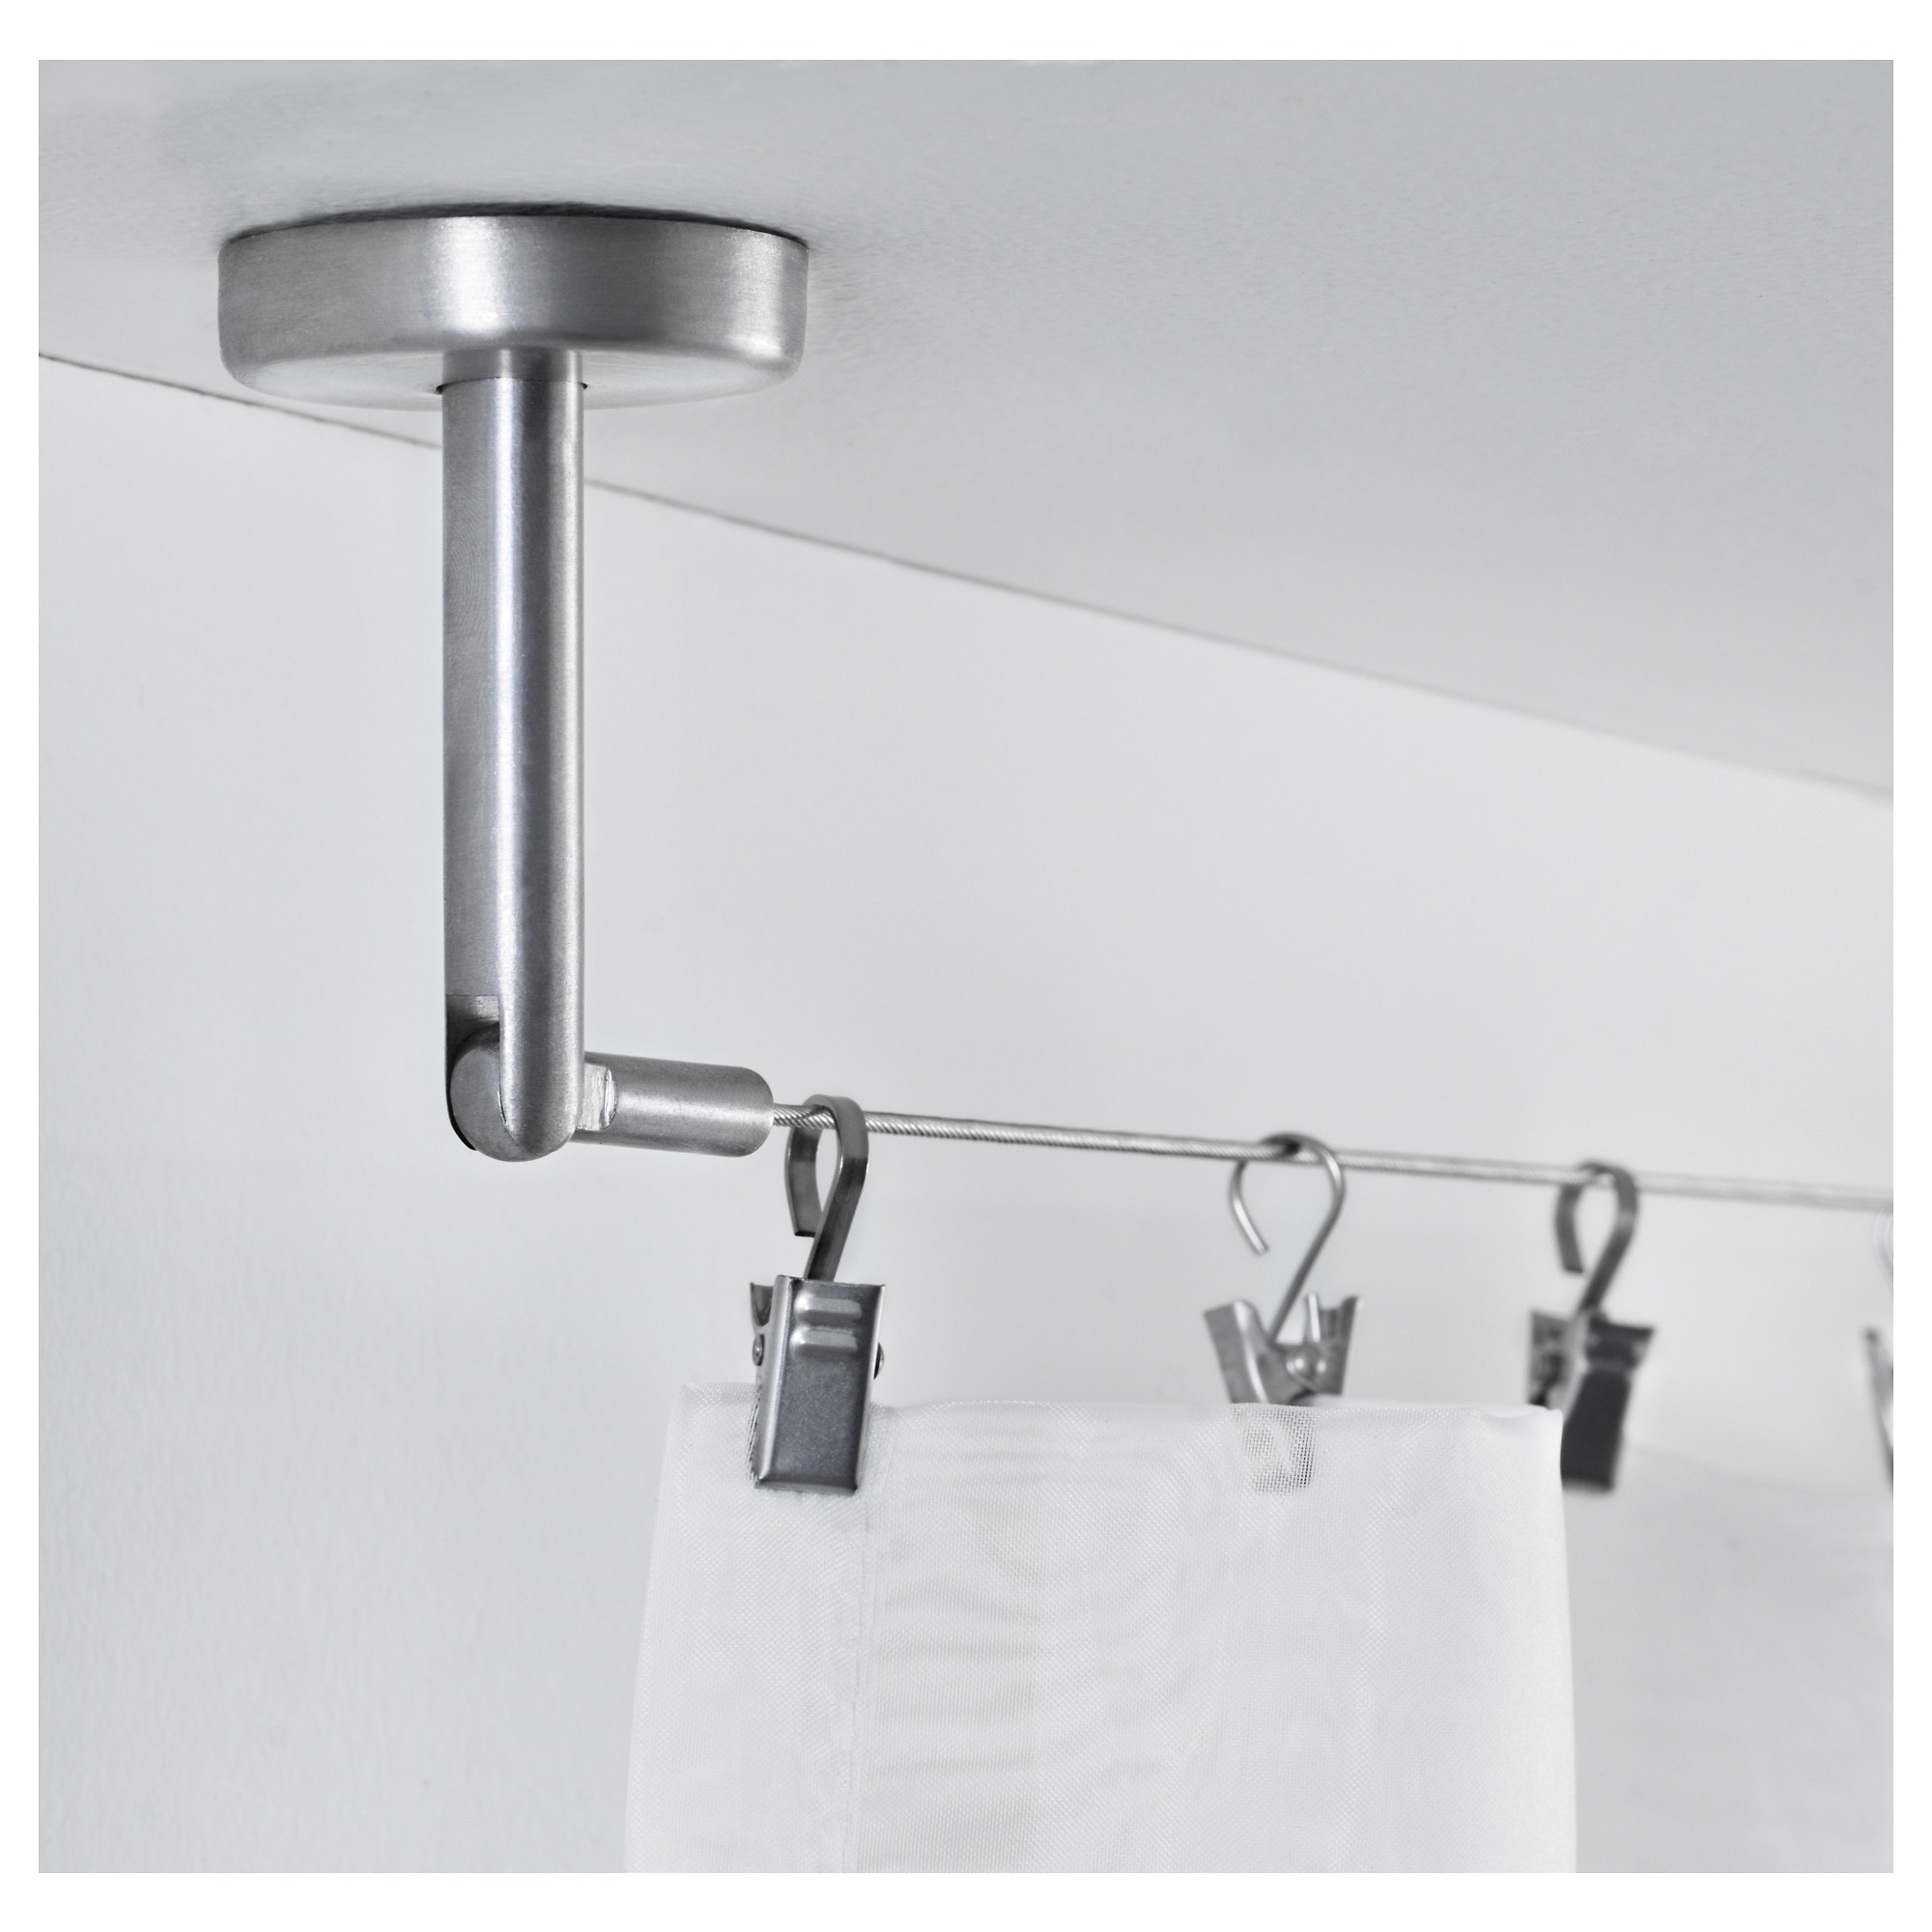 Tension shower curtain rods - Tension Shower Curtain Rods 44